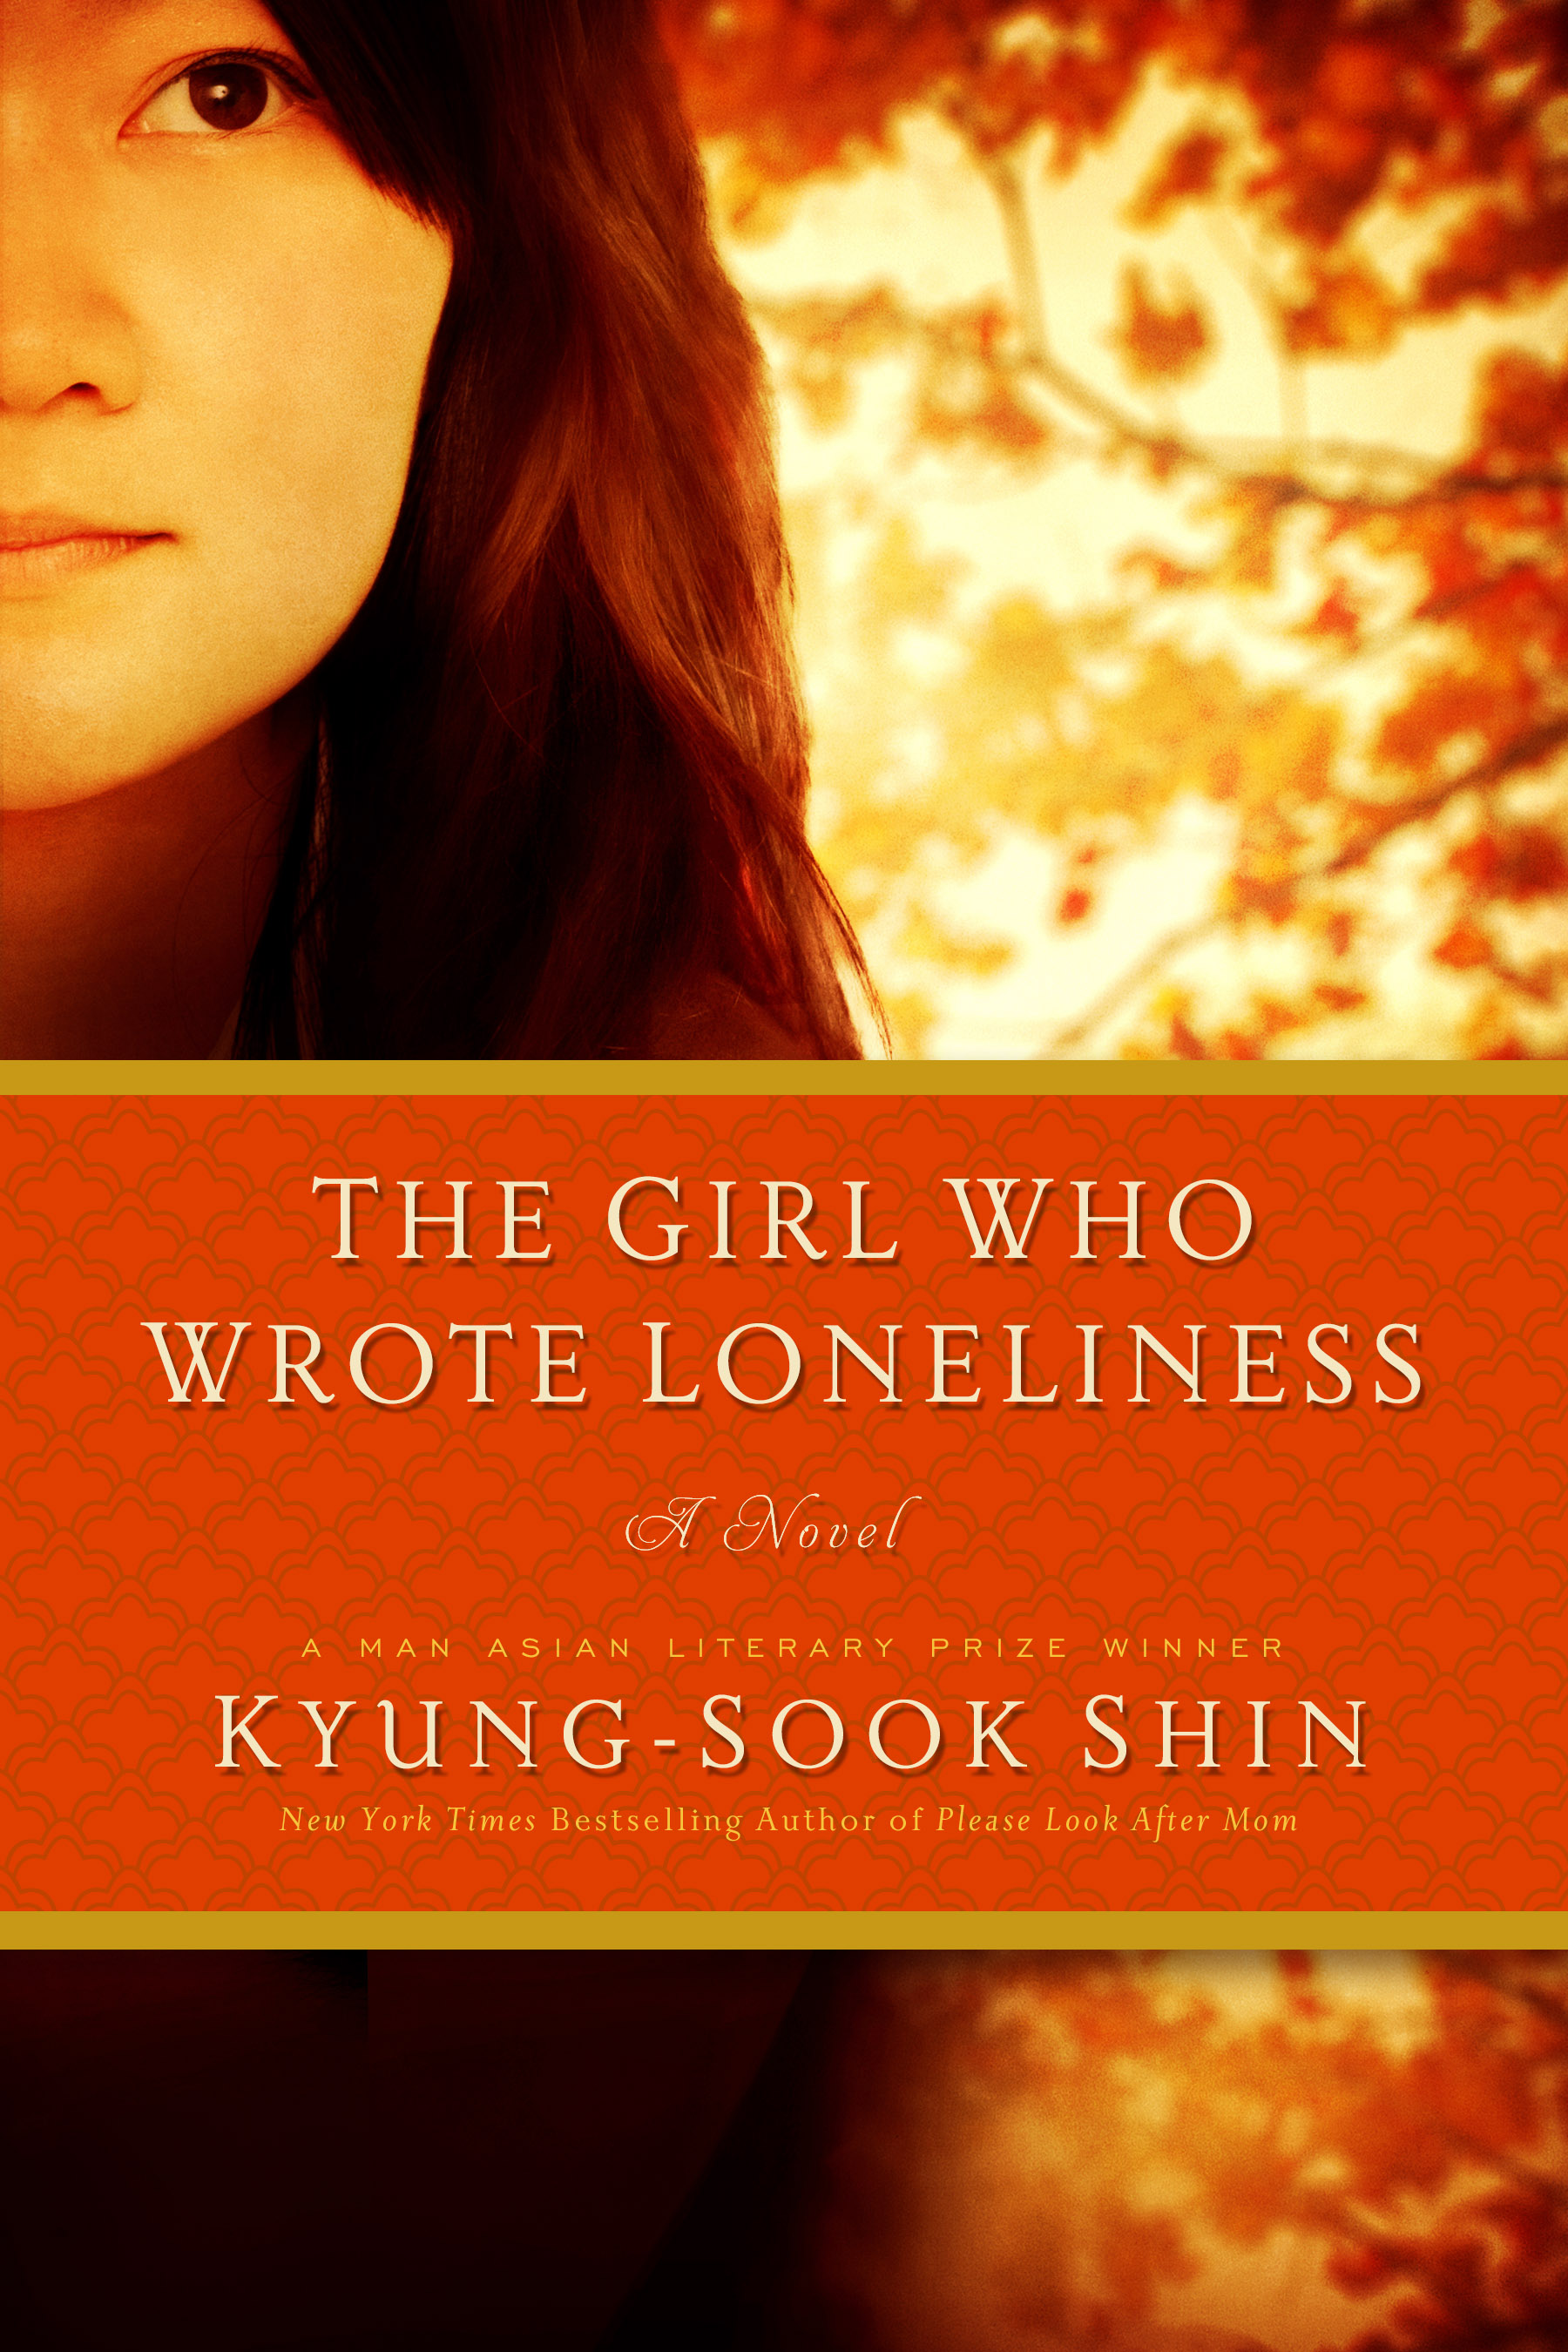 The Girl Who Wrote Loneliness-ADa.jpg